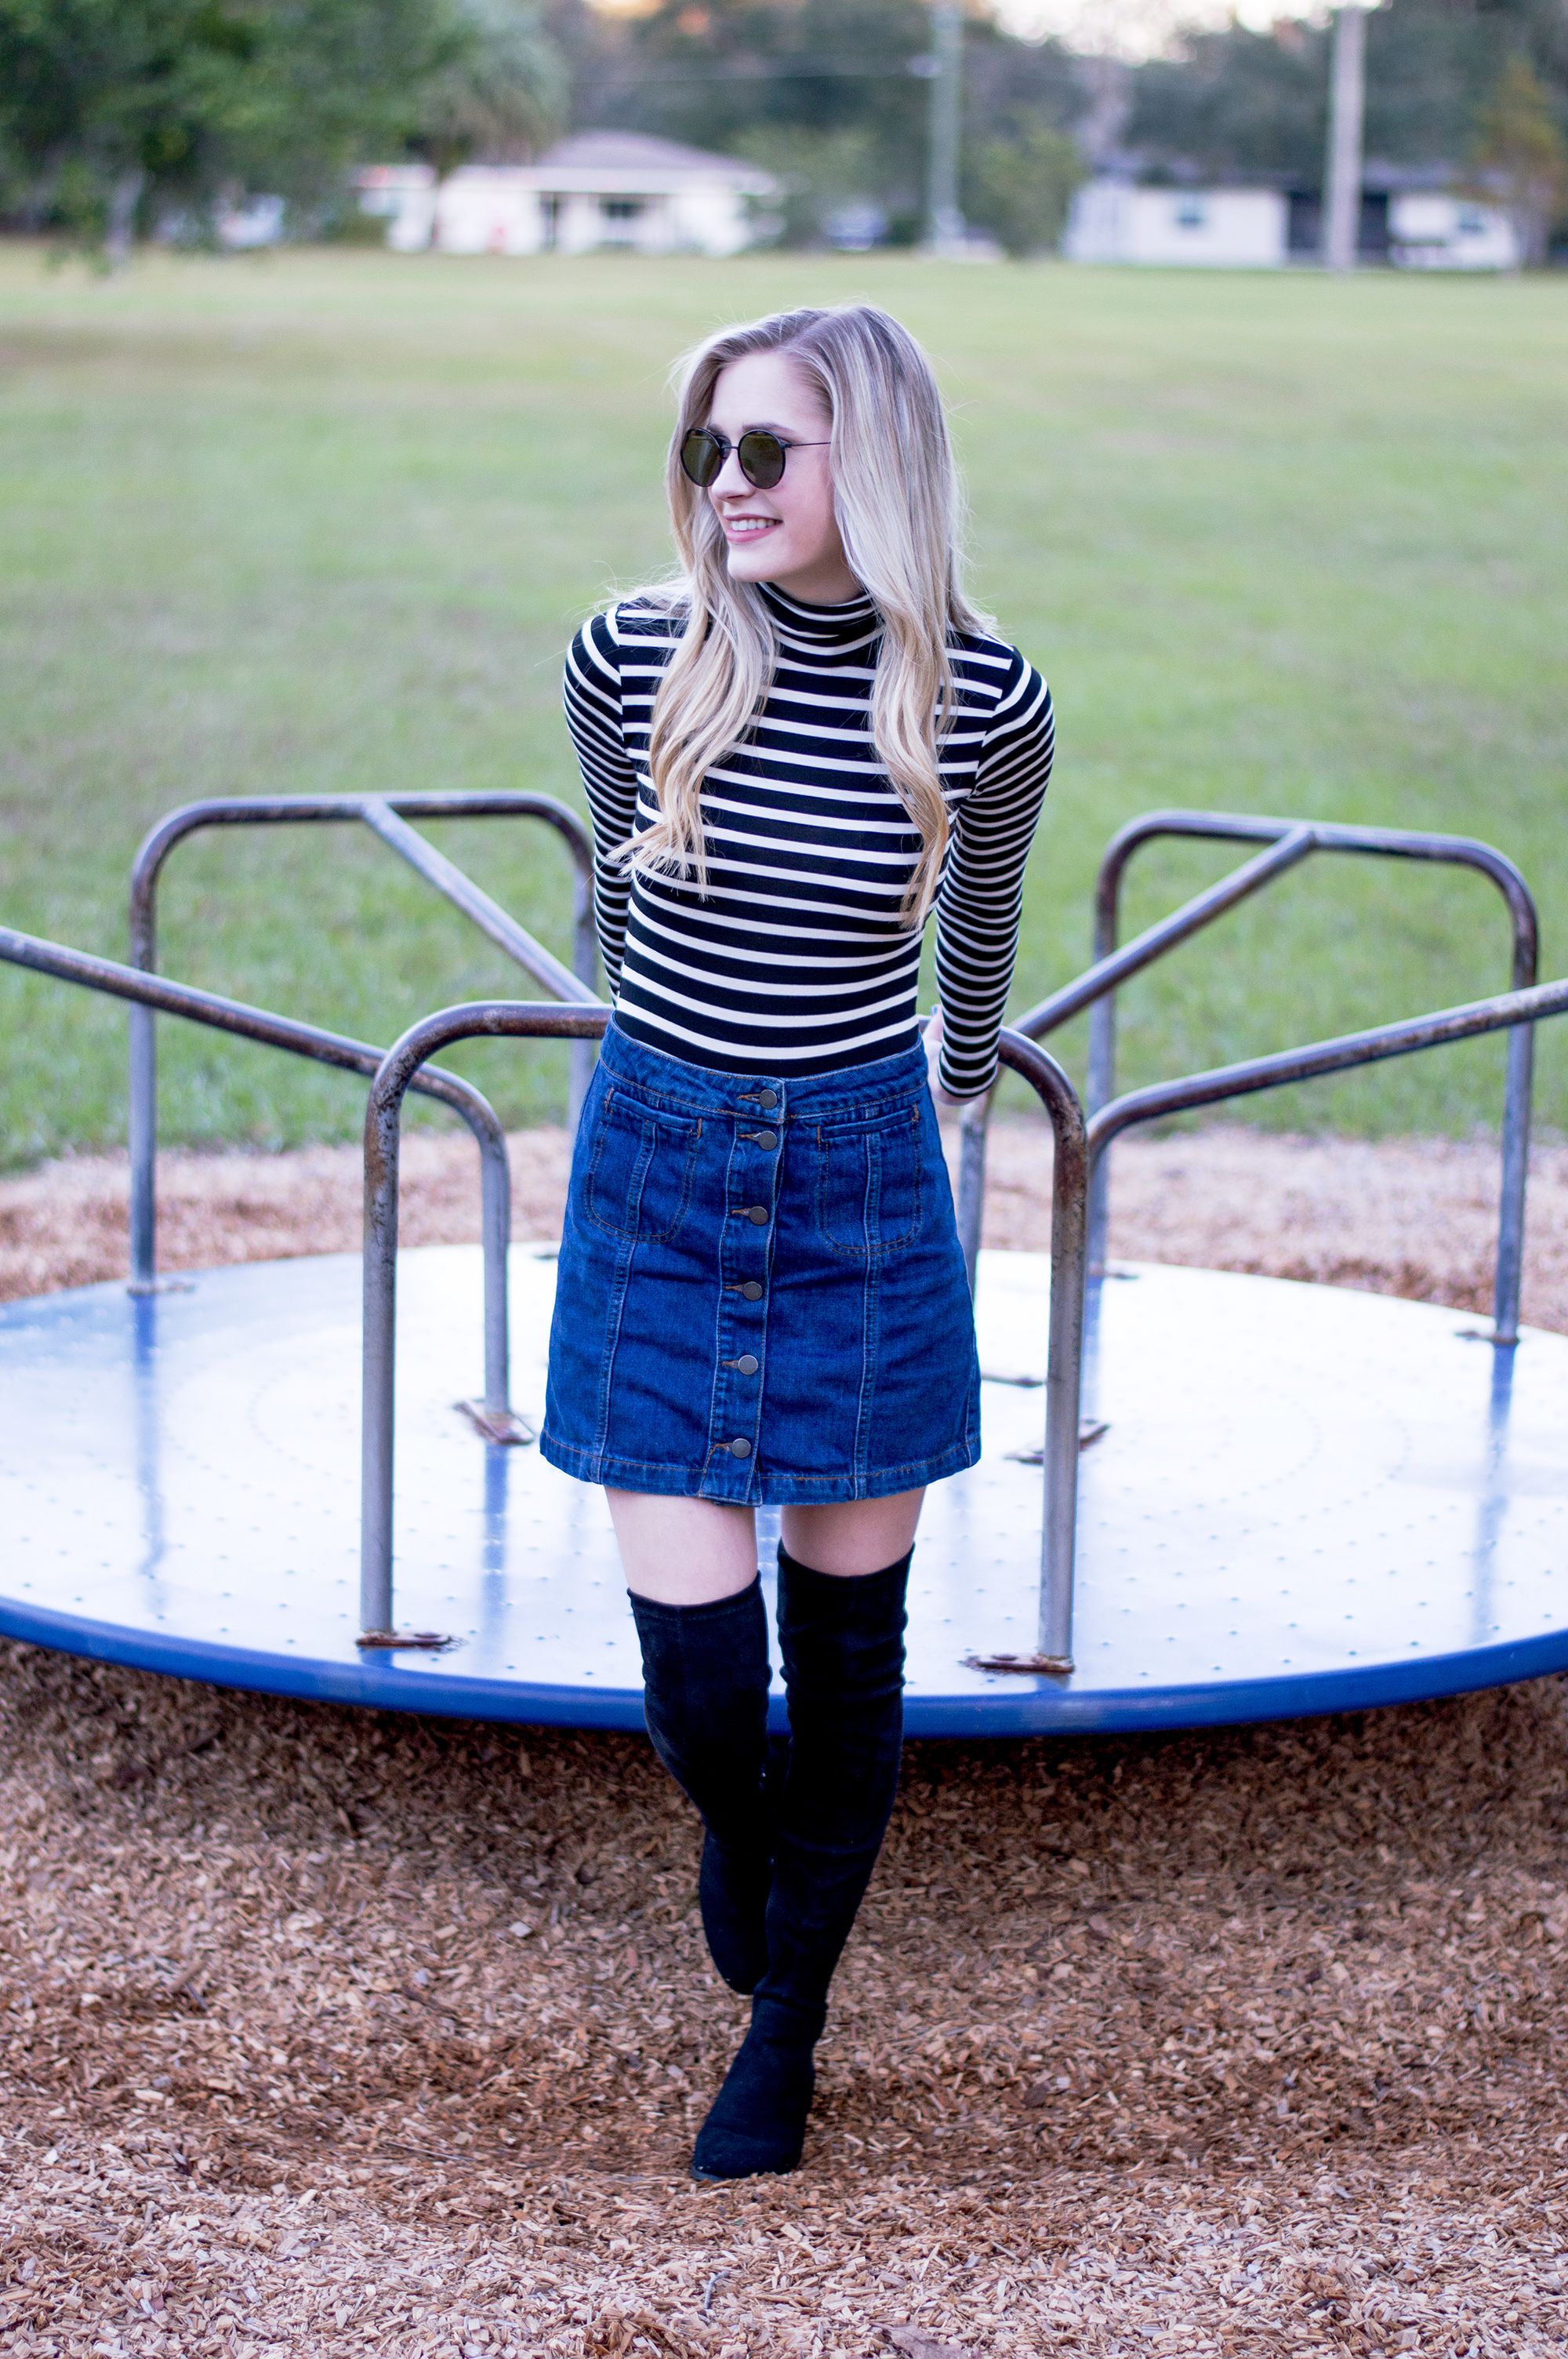 styelled_blog_fashion_lifestyle_beauty_style_blogger_topshop_forever_21_denim_skirt_striped_turtleneck_diff_eyewear_winter_style_fall_sweater_weather_over_the_knee_boots_02